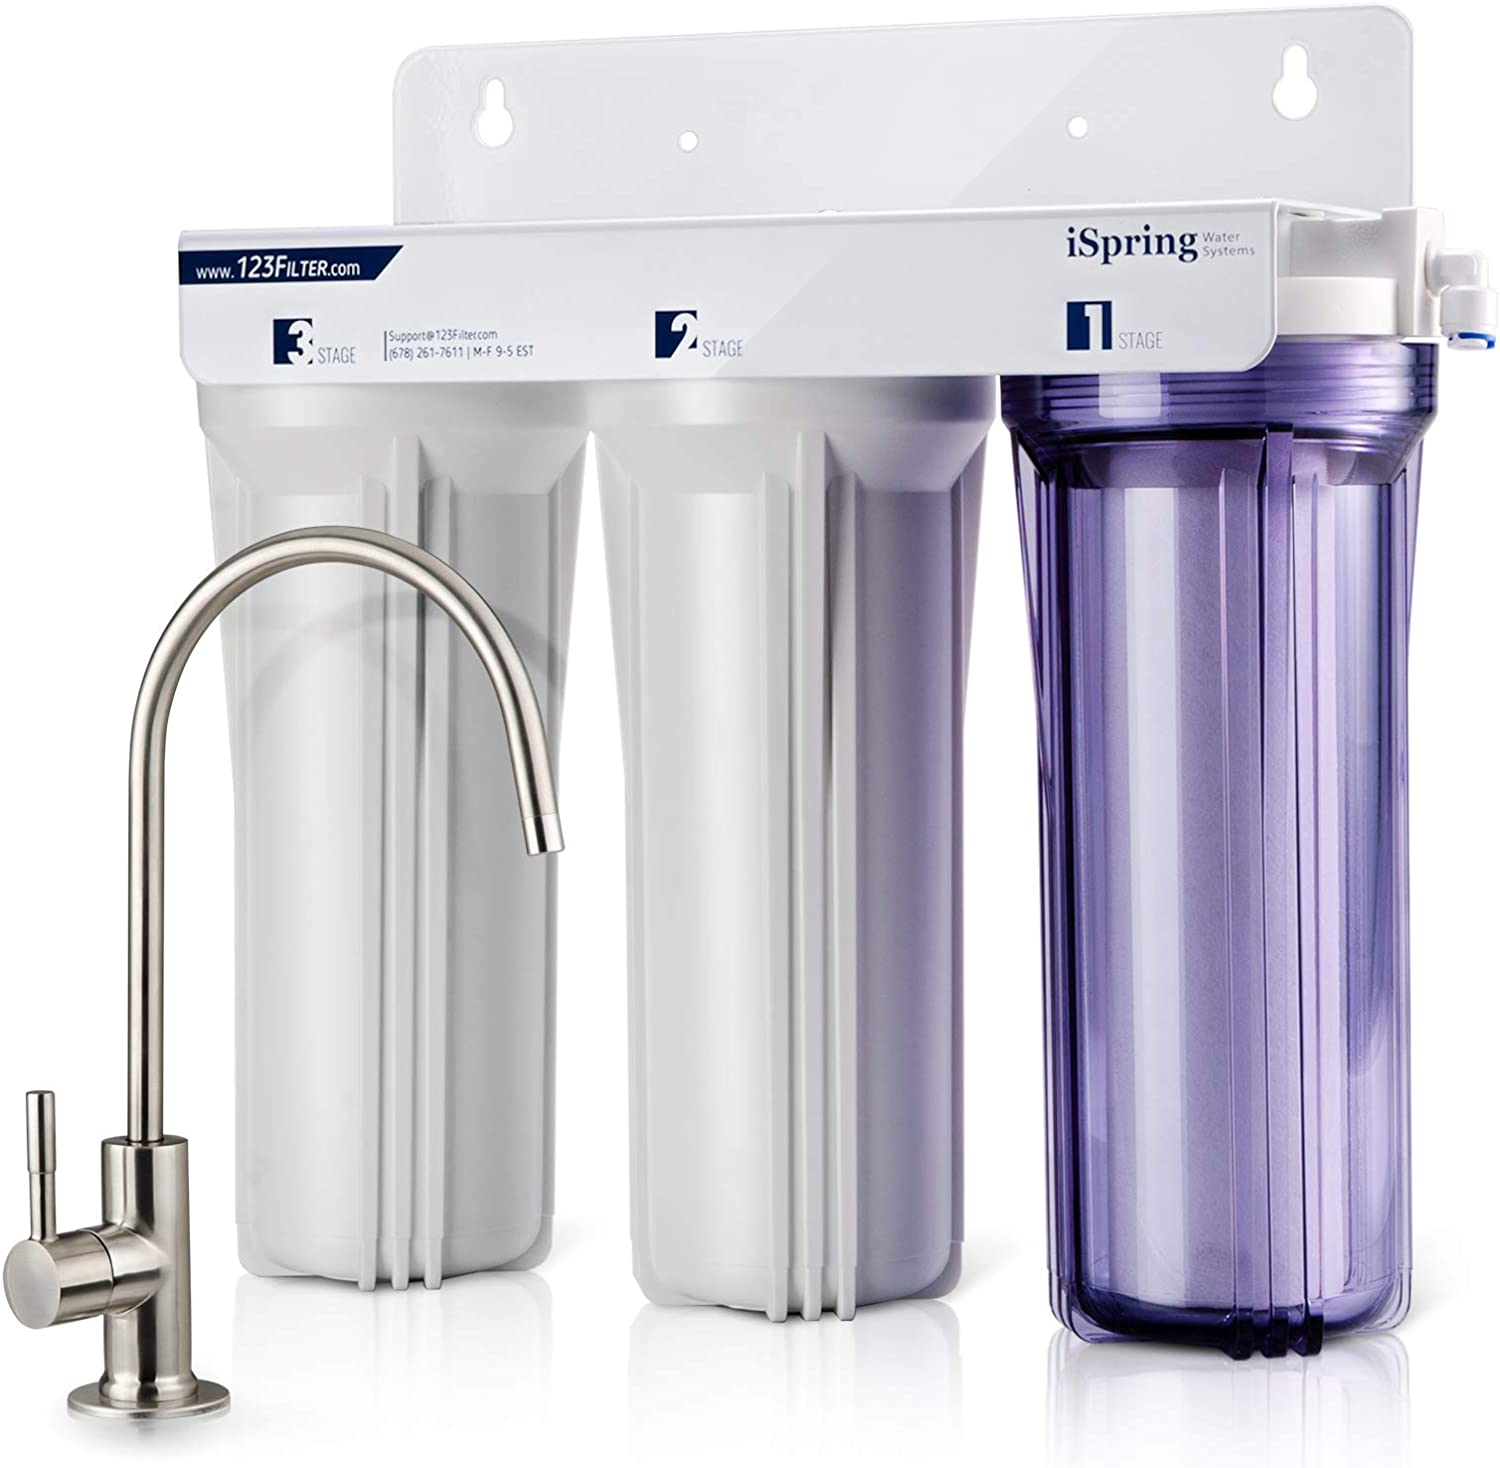 iSpring US31 3-Stage Under Sink Water Filter Reviews